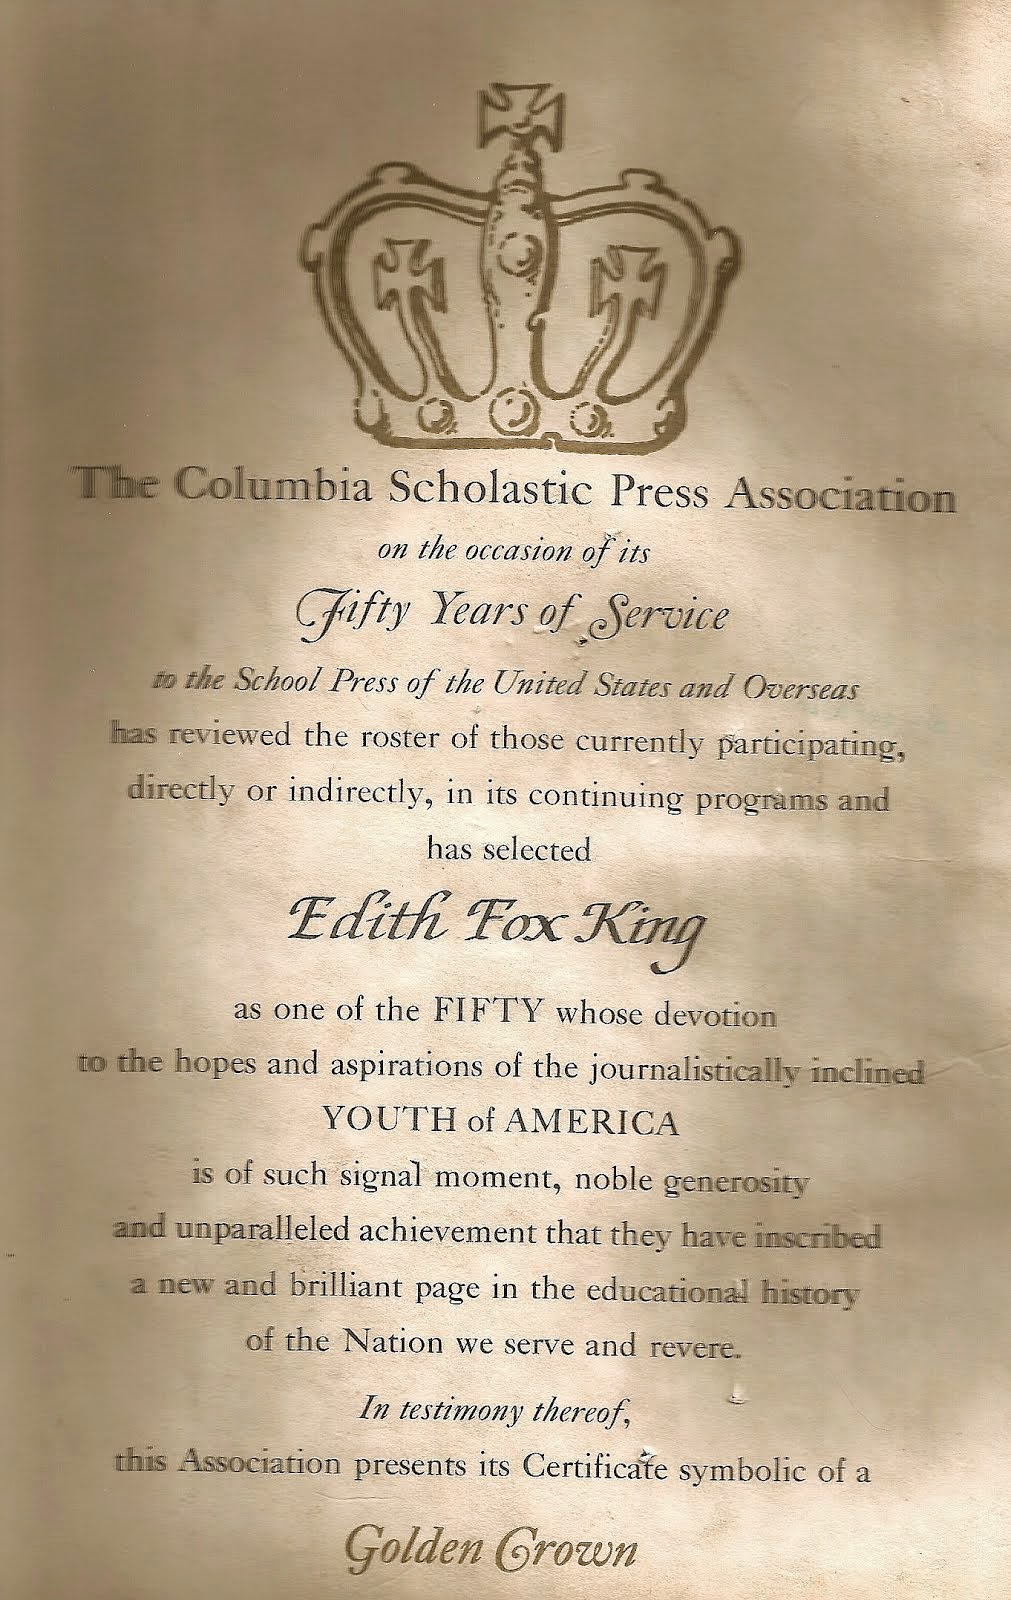 An award from Columbia Scholastic Press Association in 1955